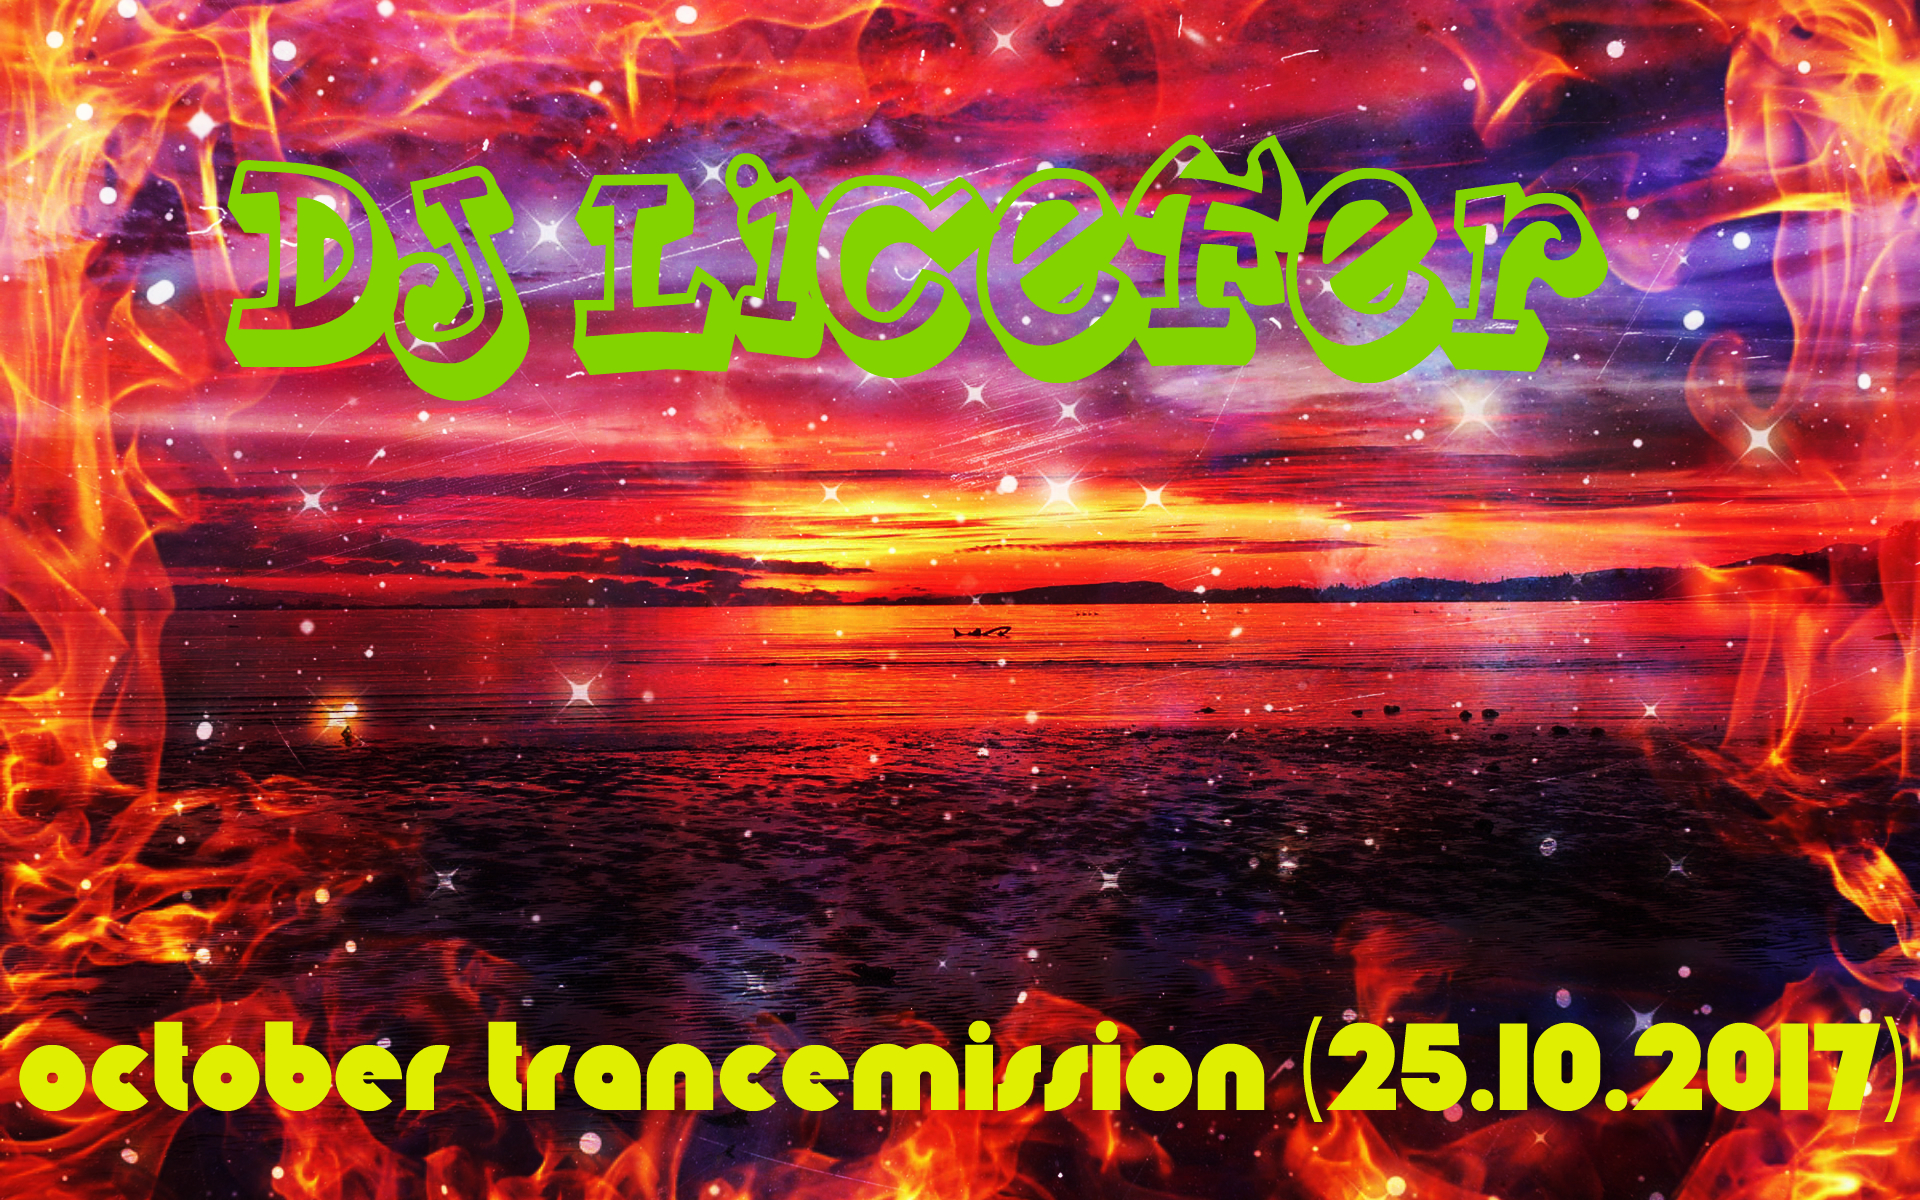 Dj Licefer - October Trancemission (25.10.2017) ()